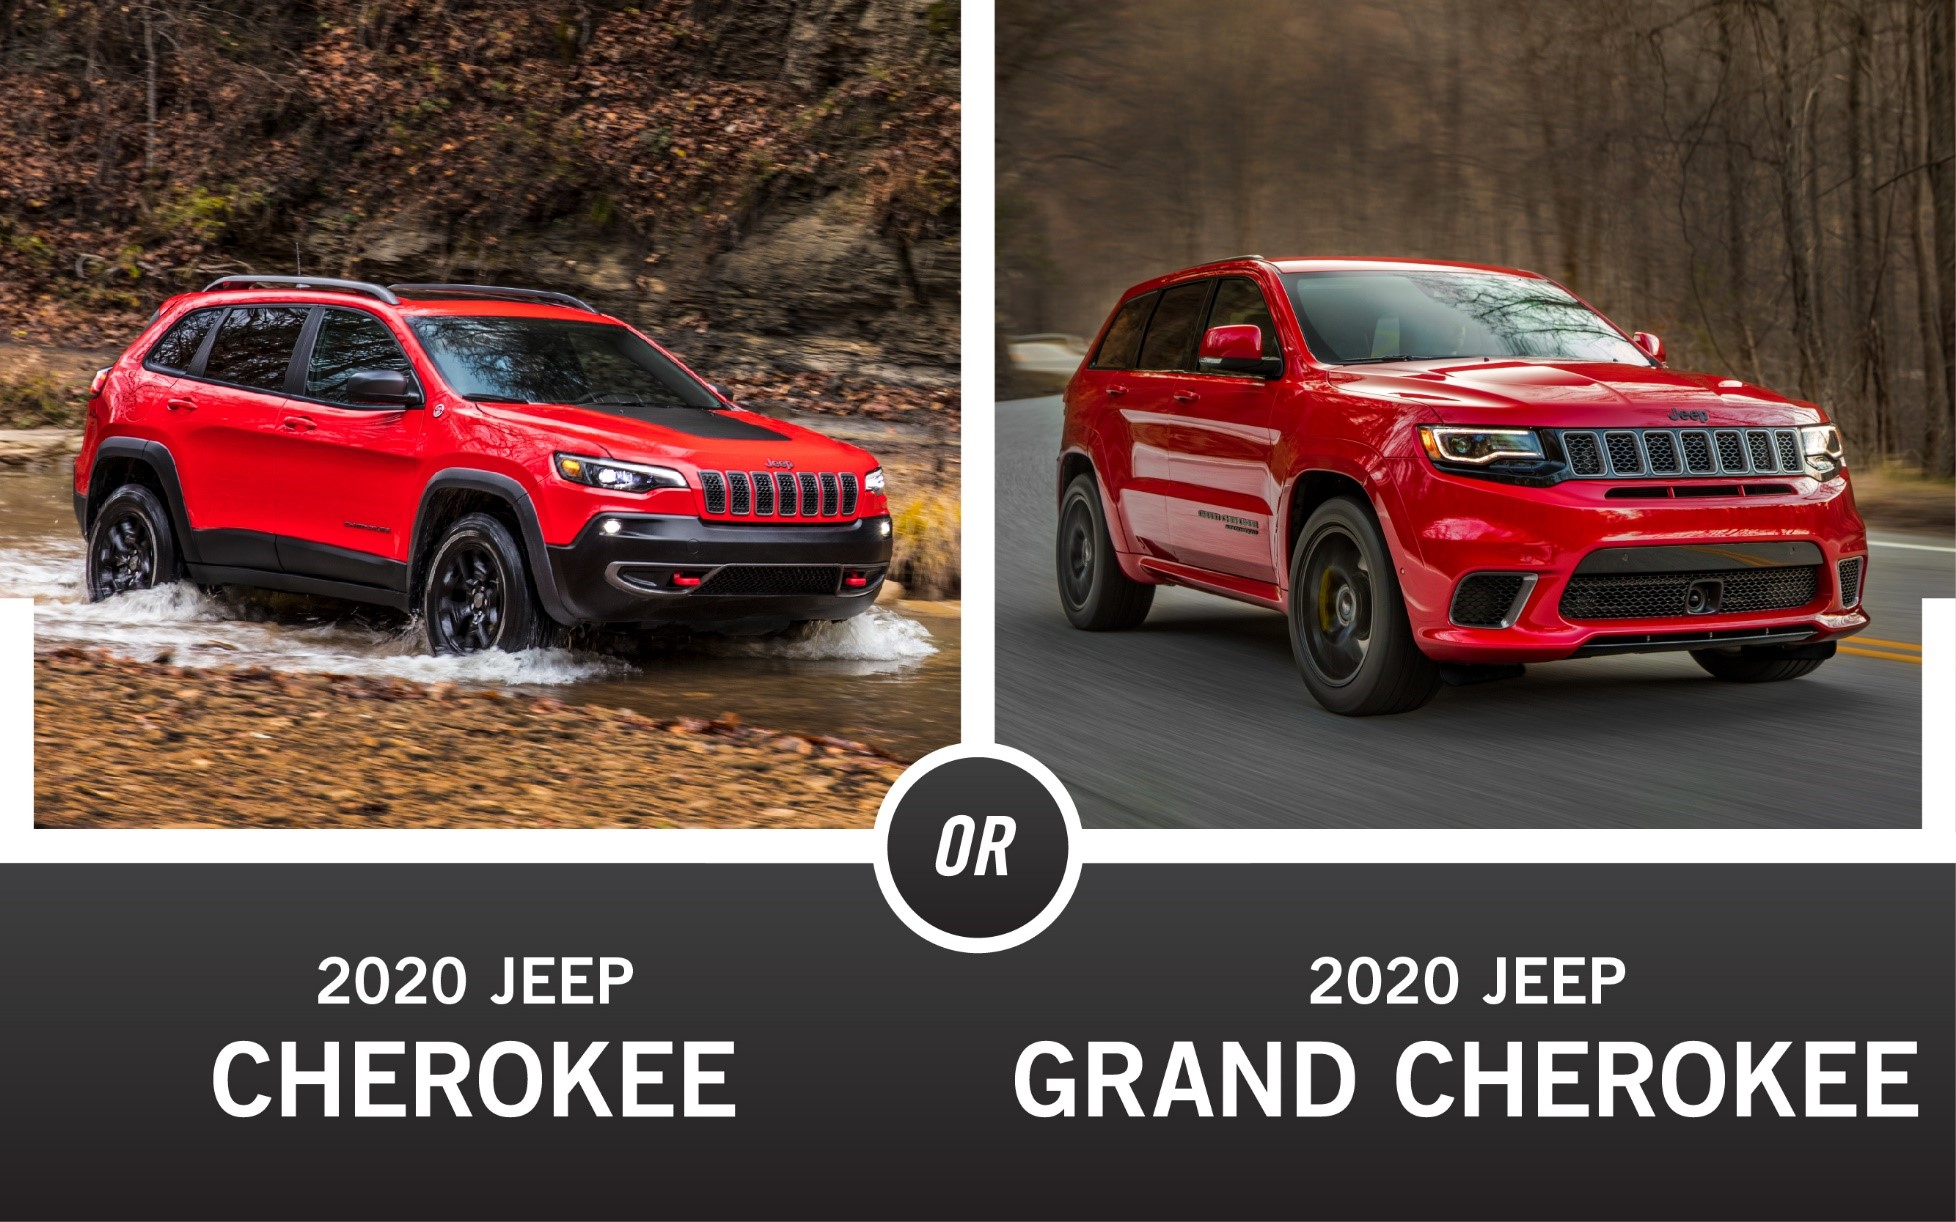 2021 Jeep vs 2021 Jeep Grand Cherokee